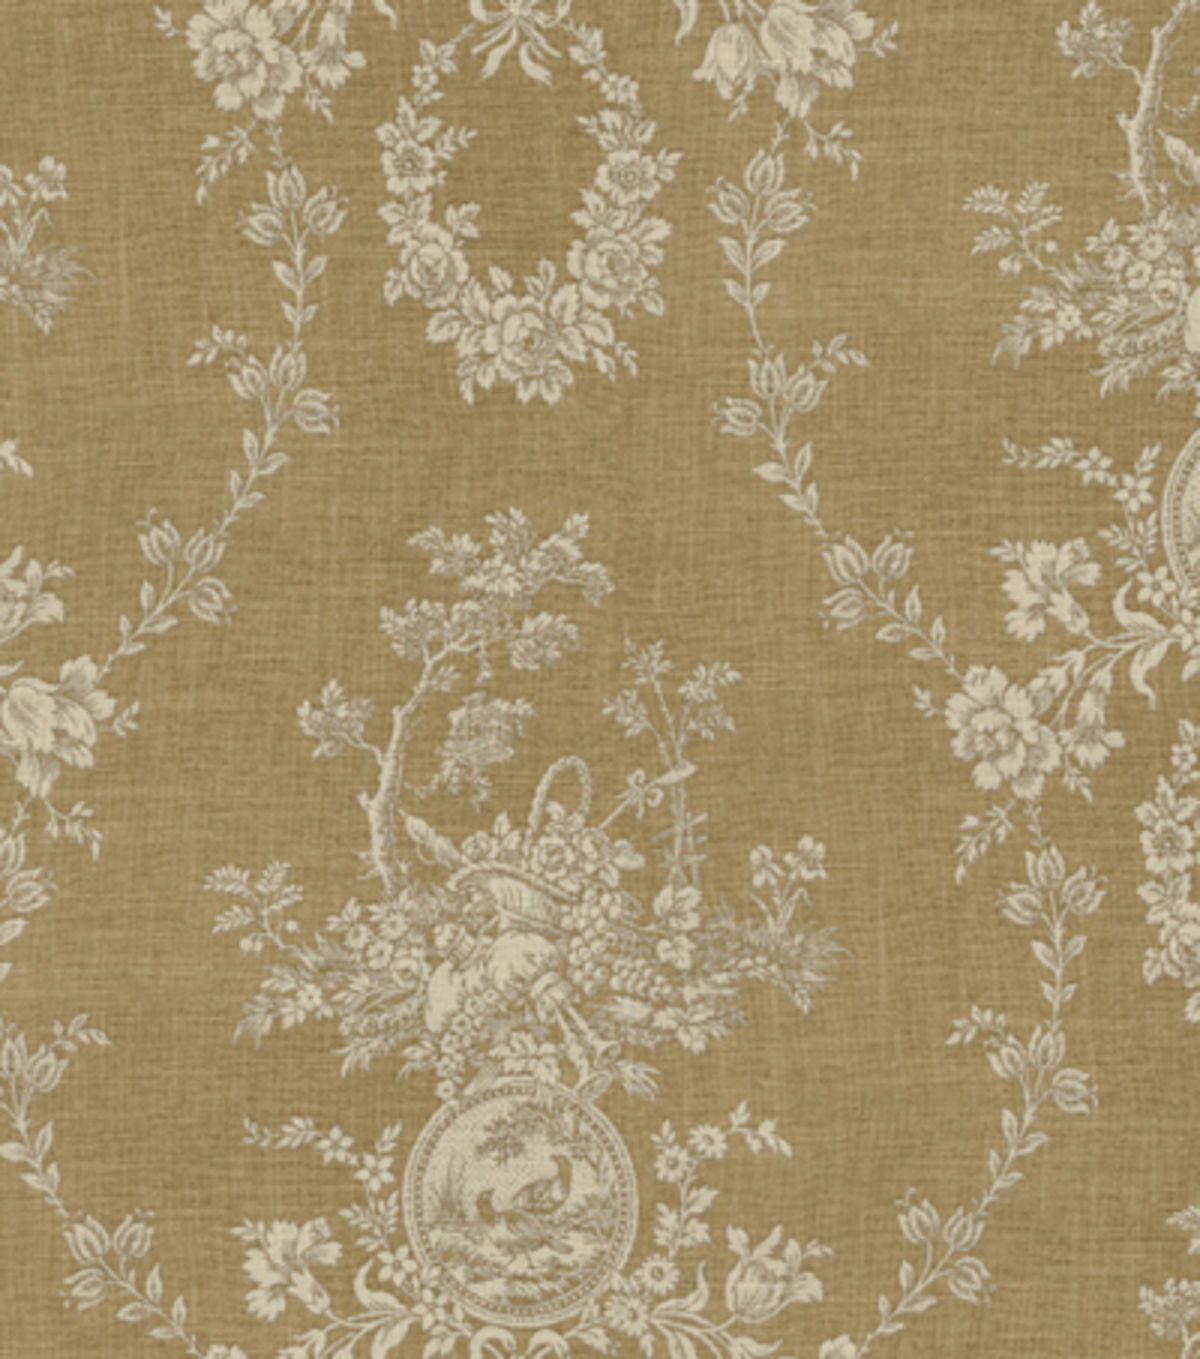 For sofa pillows - Home Decor Print Fabric-Waverly Country House /Linen